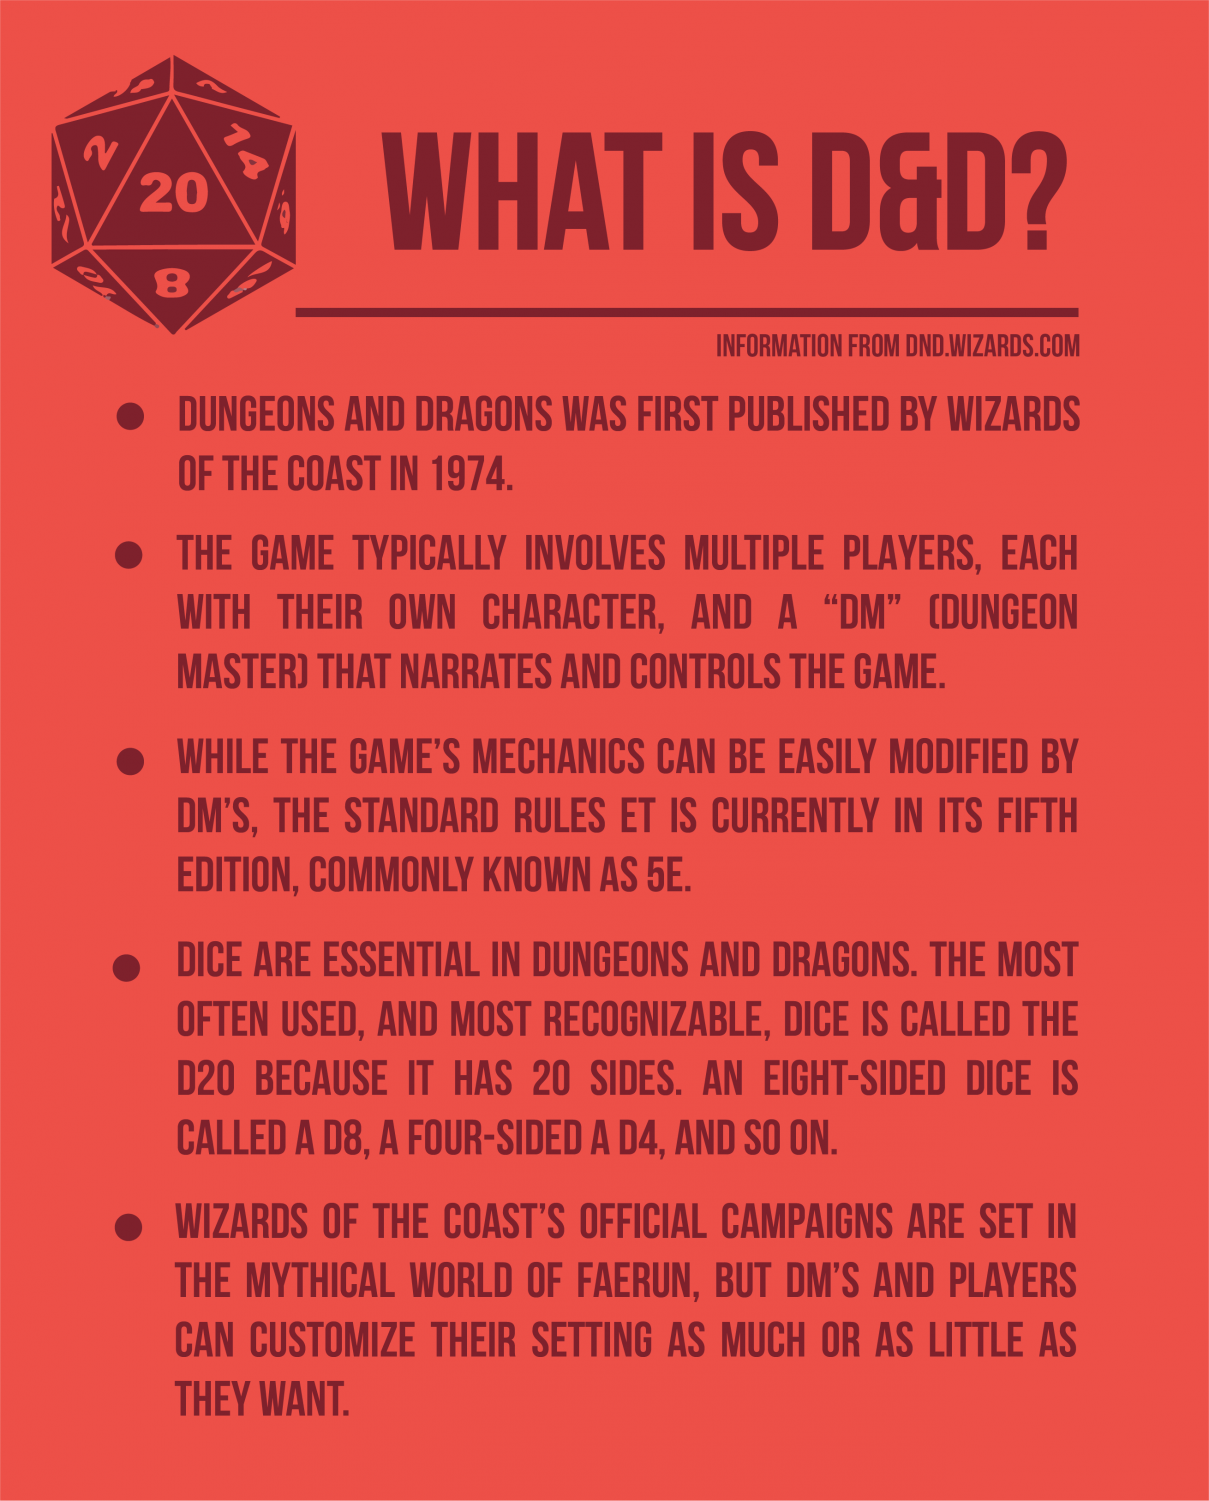 Information from the Dungeons and Dragons official site.